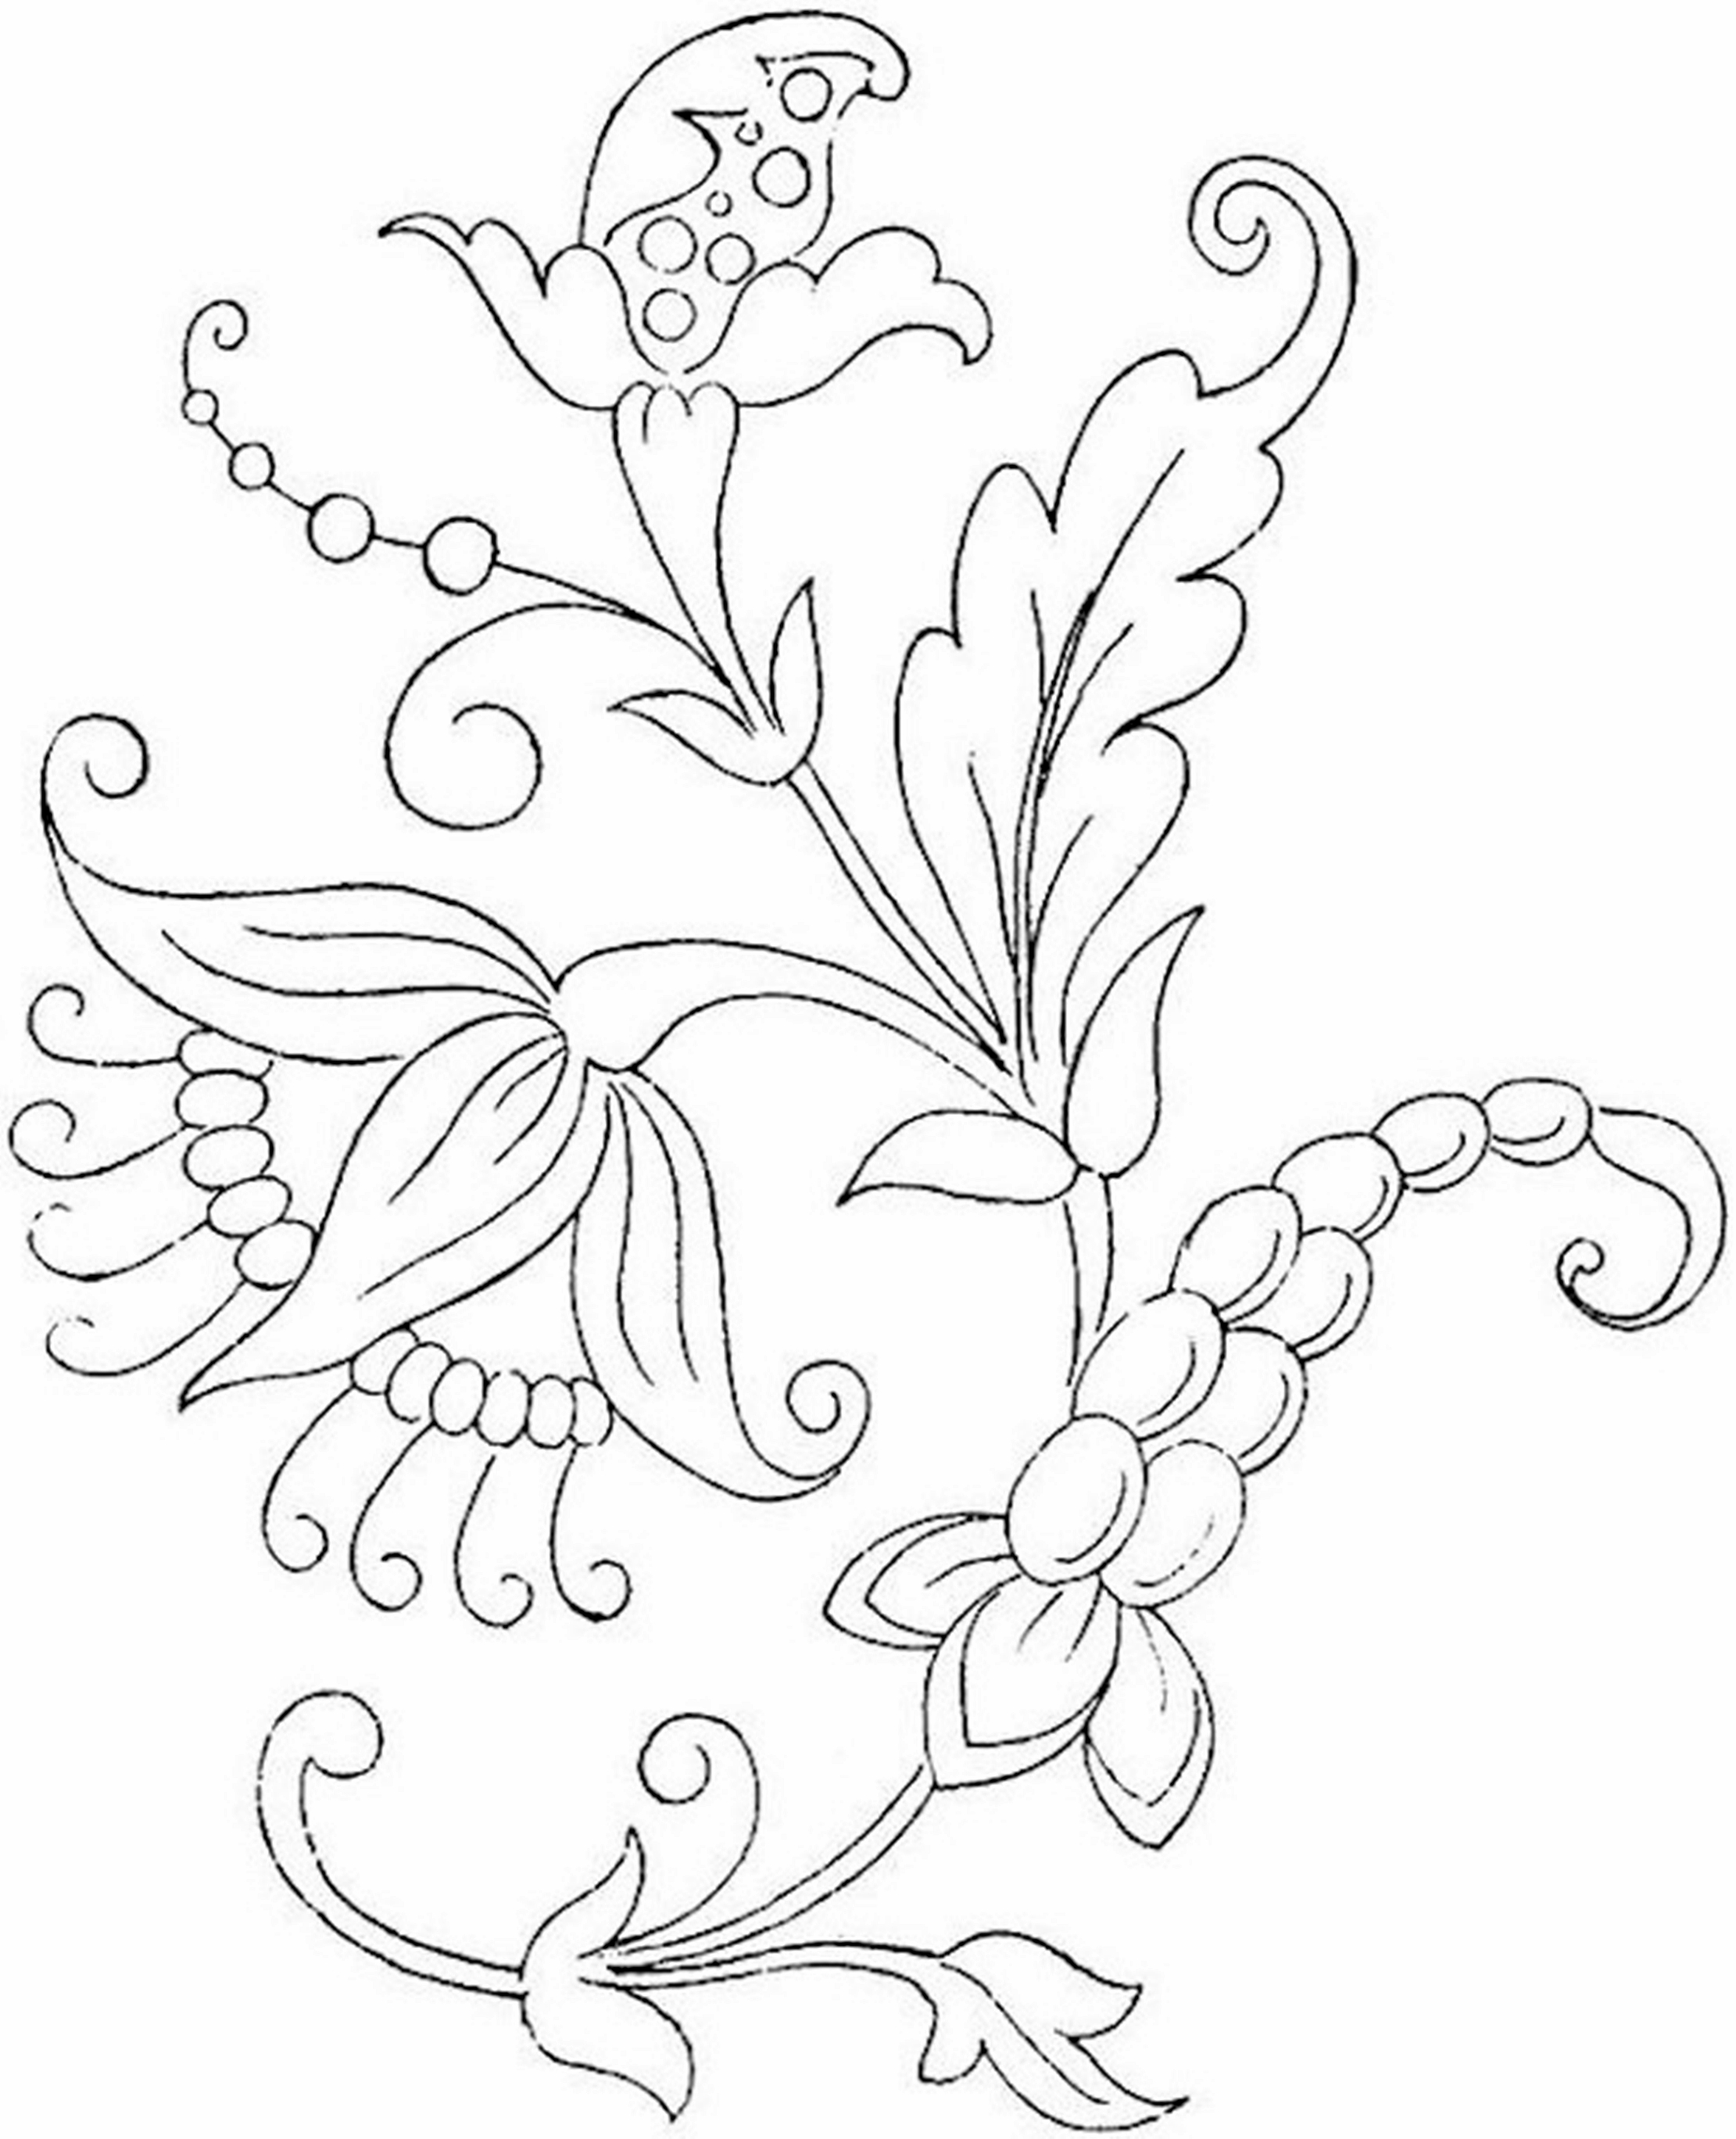 coloring pages flowers printable free printable flower coloring pages for kids best coloring printable flowers pages